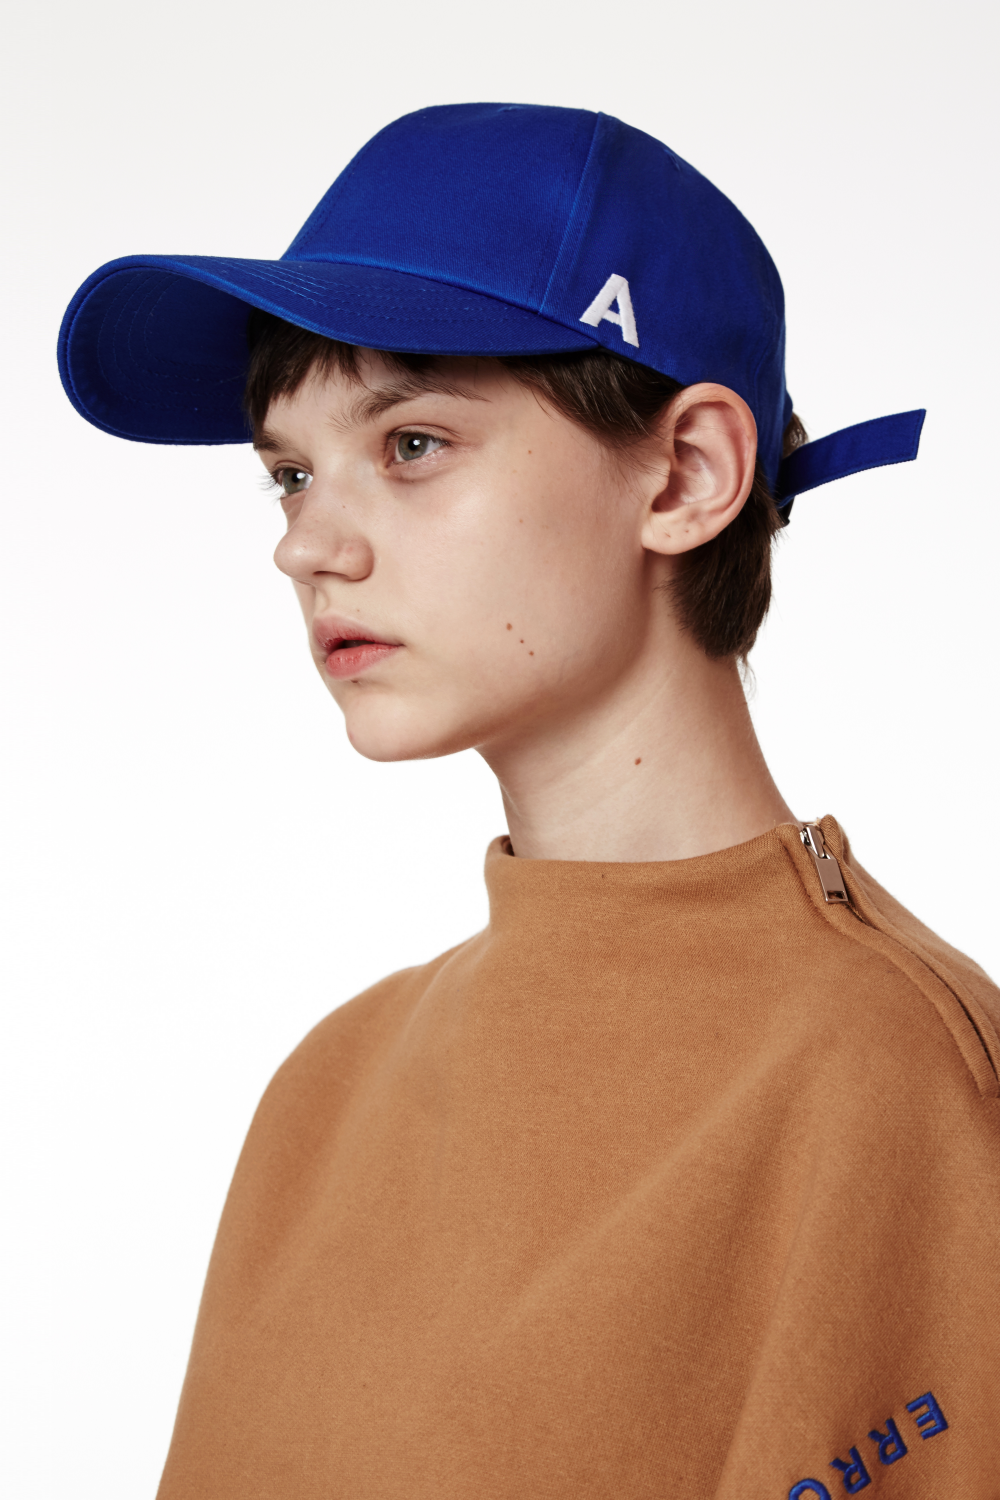 ADER AderSpace Shop Faces 패션 잡지 사진, 남성 모델 및 그림